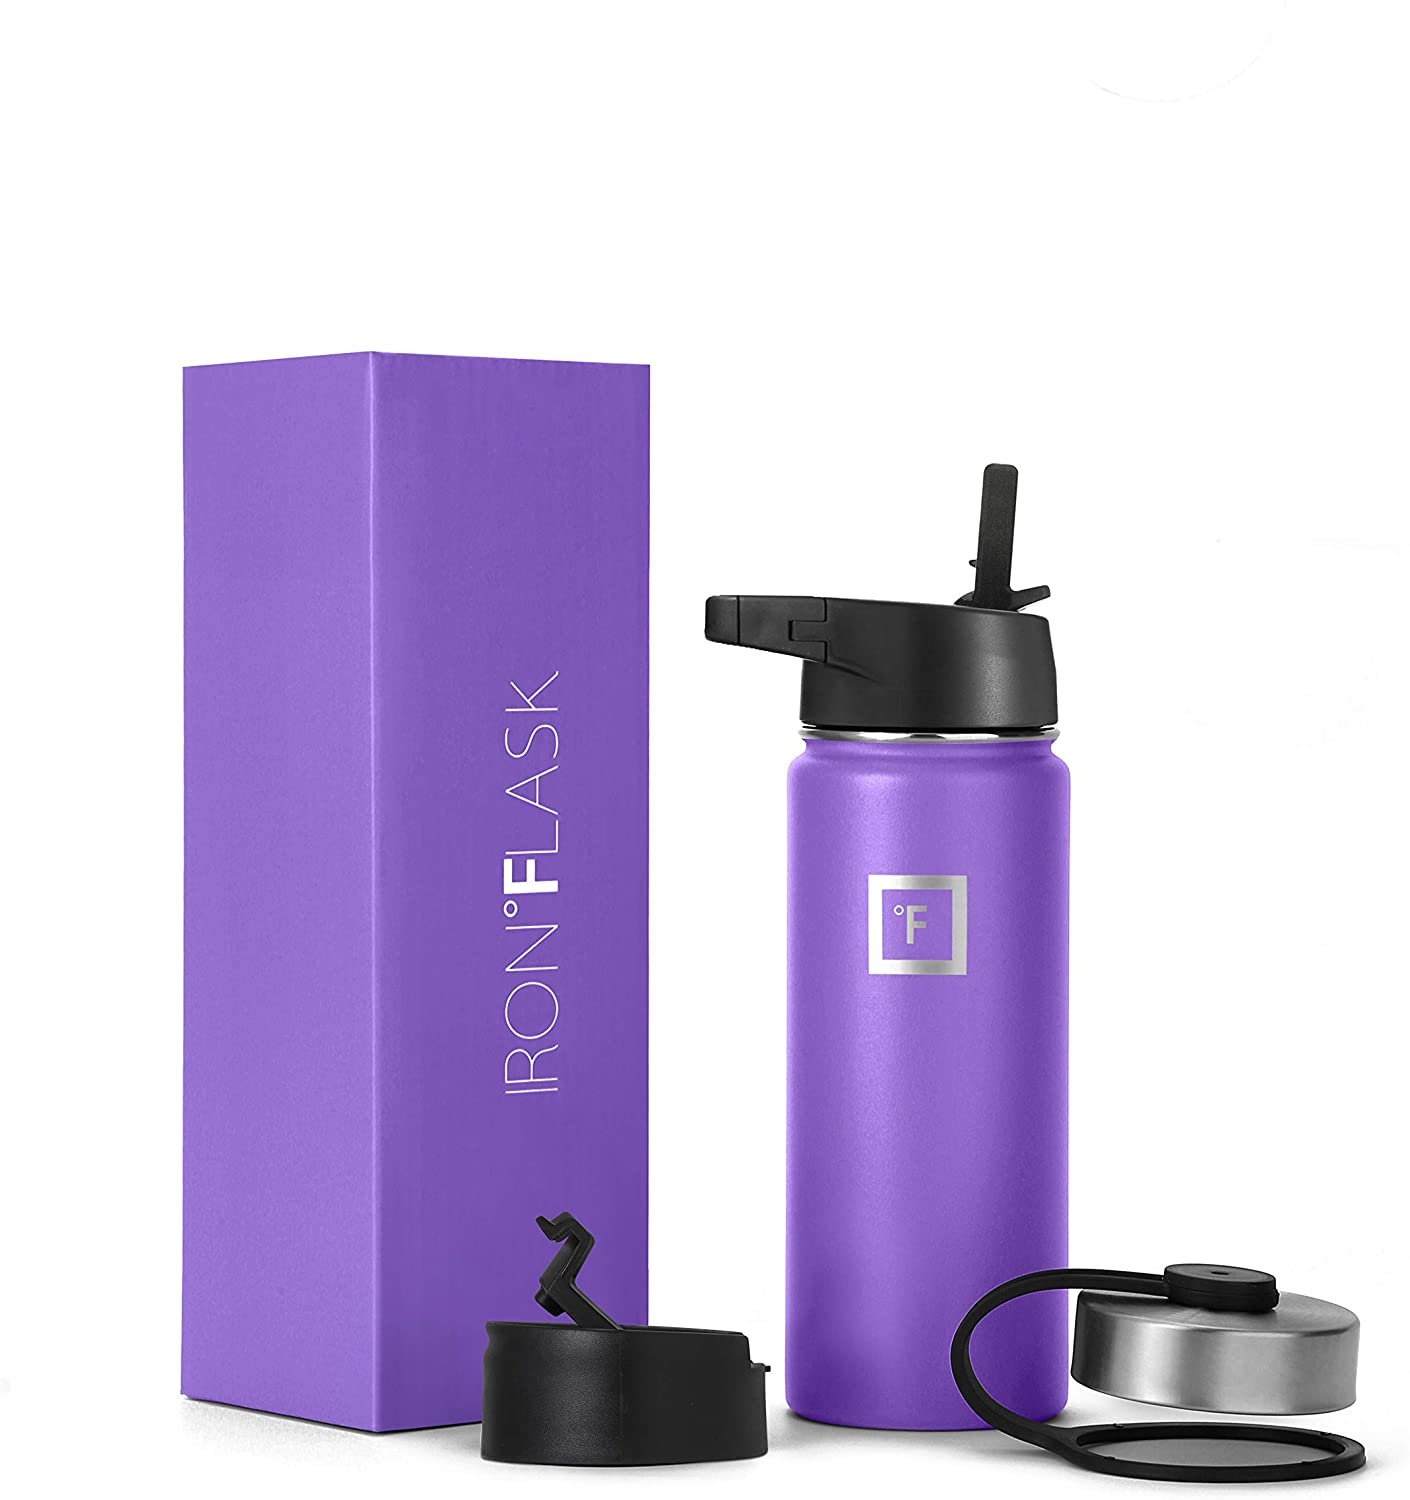 Iron Flask Sports Water Bottle - 18 Oz, 3 Lids (Straw Lid), Vacuum Insulated Stainless Steel, Hot Cold, Modern Double Walled, Simple Thermo Mug, Hydro Metal Canteen (Violet)